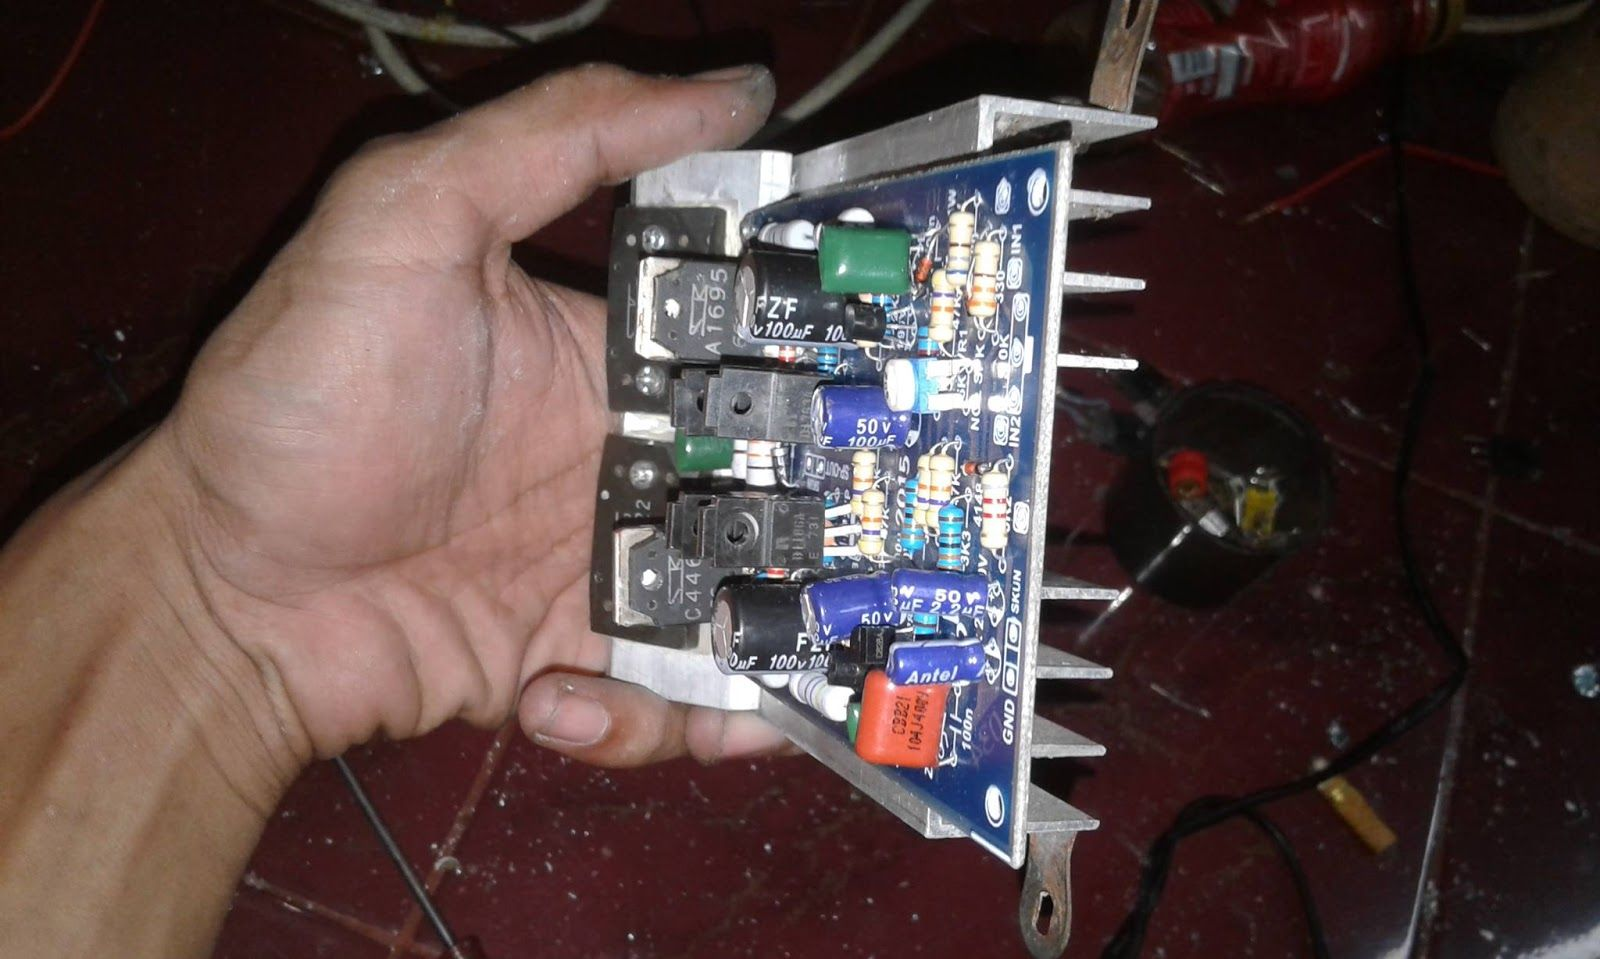 750w Mono Power Amplifier Schematic And Pcb Raz Dwa Pinterest This Simple Shows A 140w Audio Circuit By Diy Kit With Final Transistor Sanken 2sc2922 2sa1216 Driver C4468 A1695 D1763 B1186